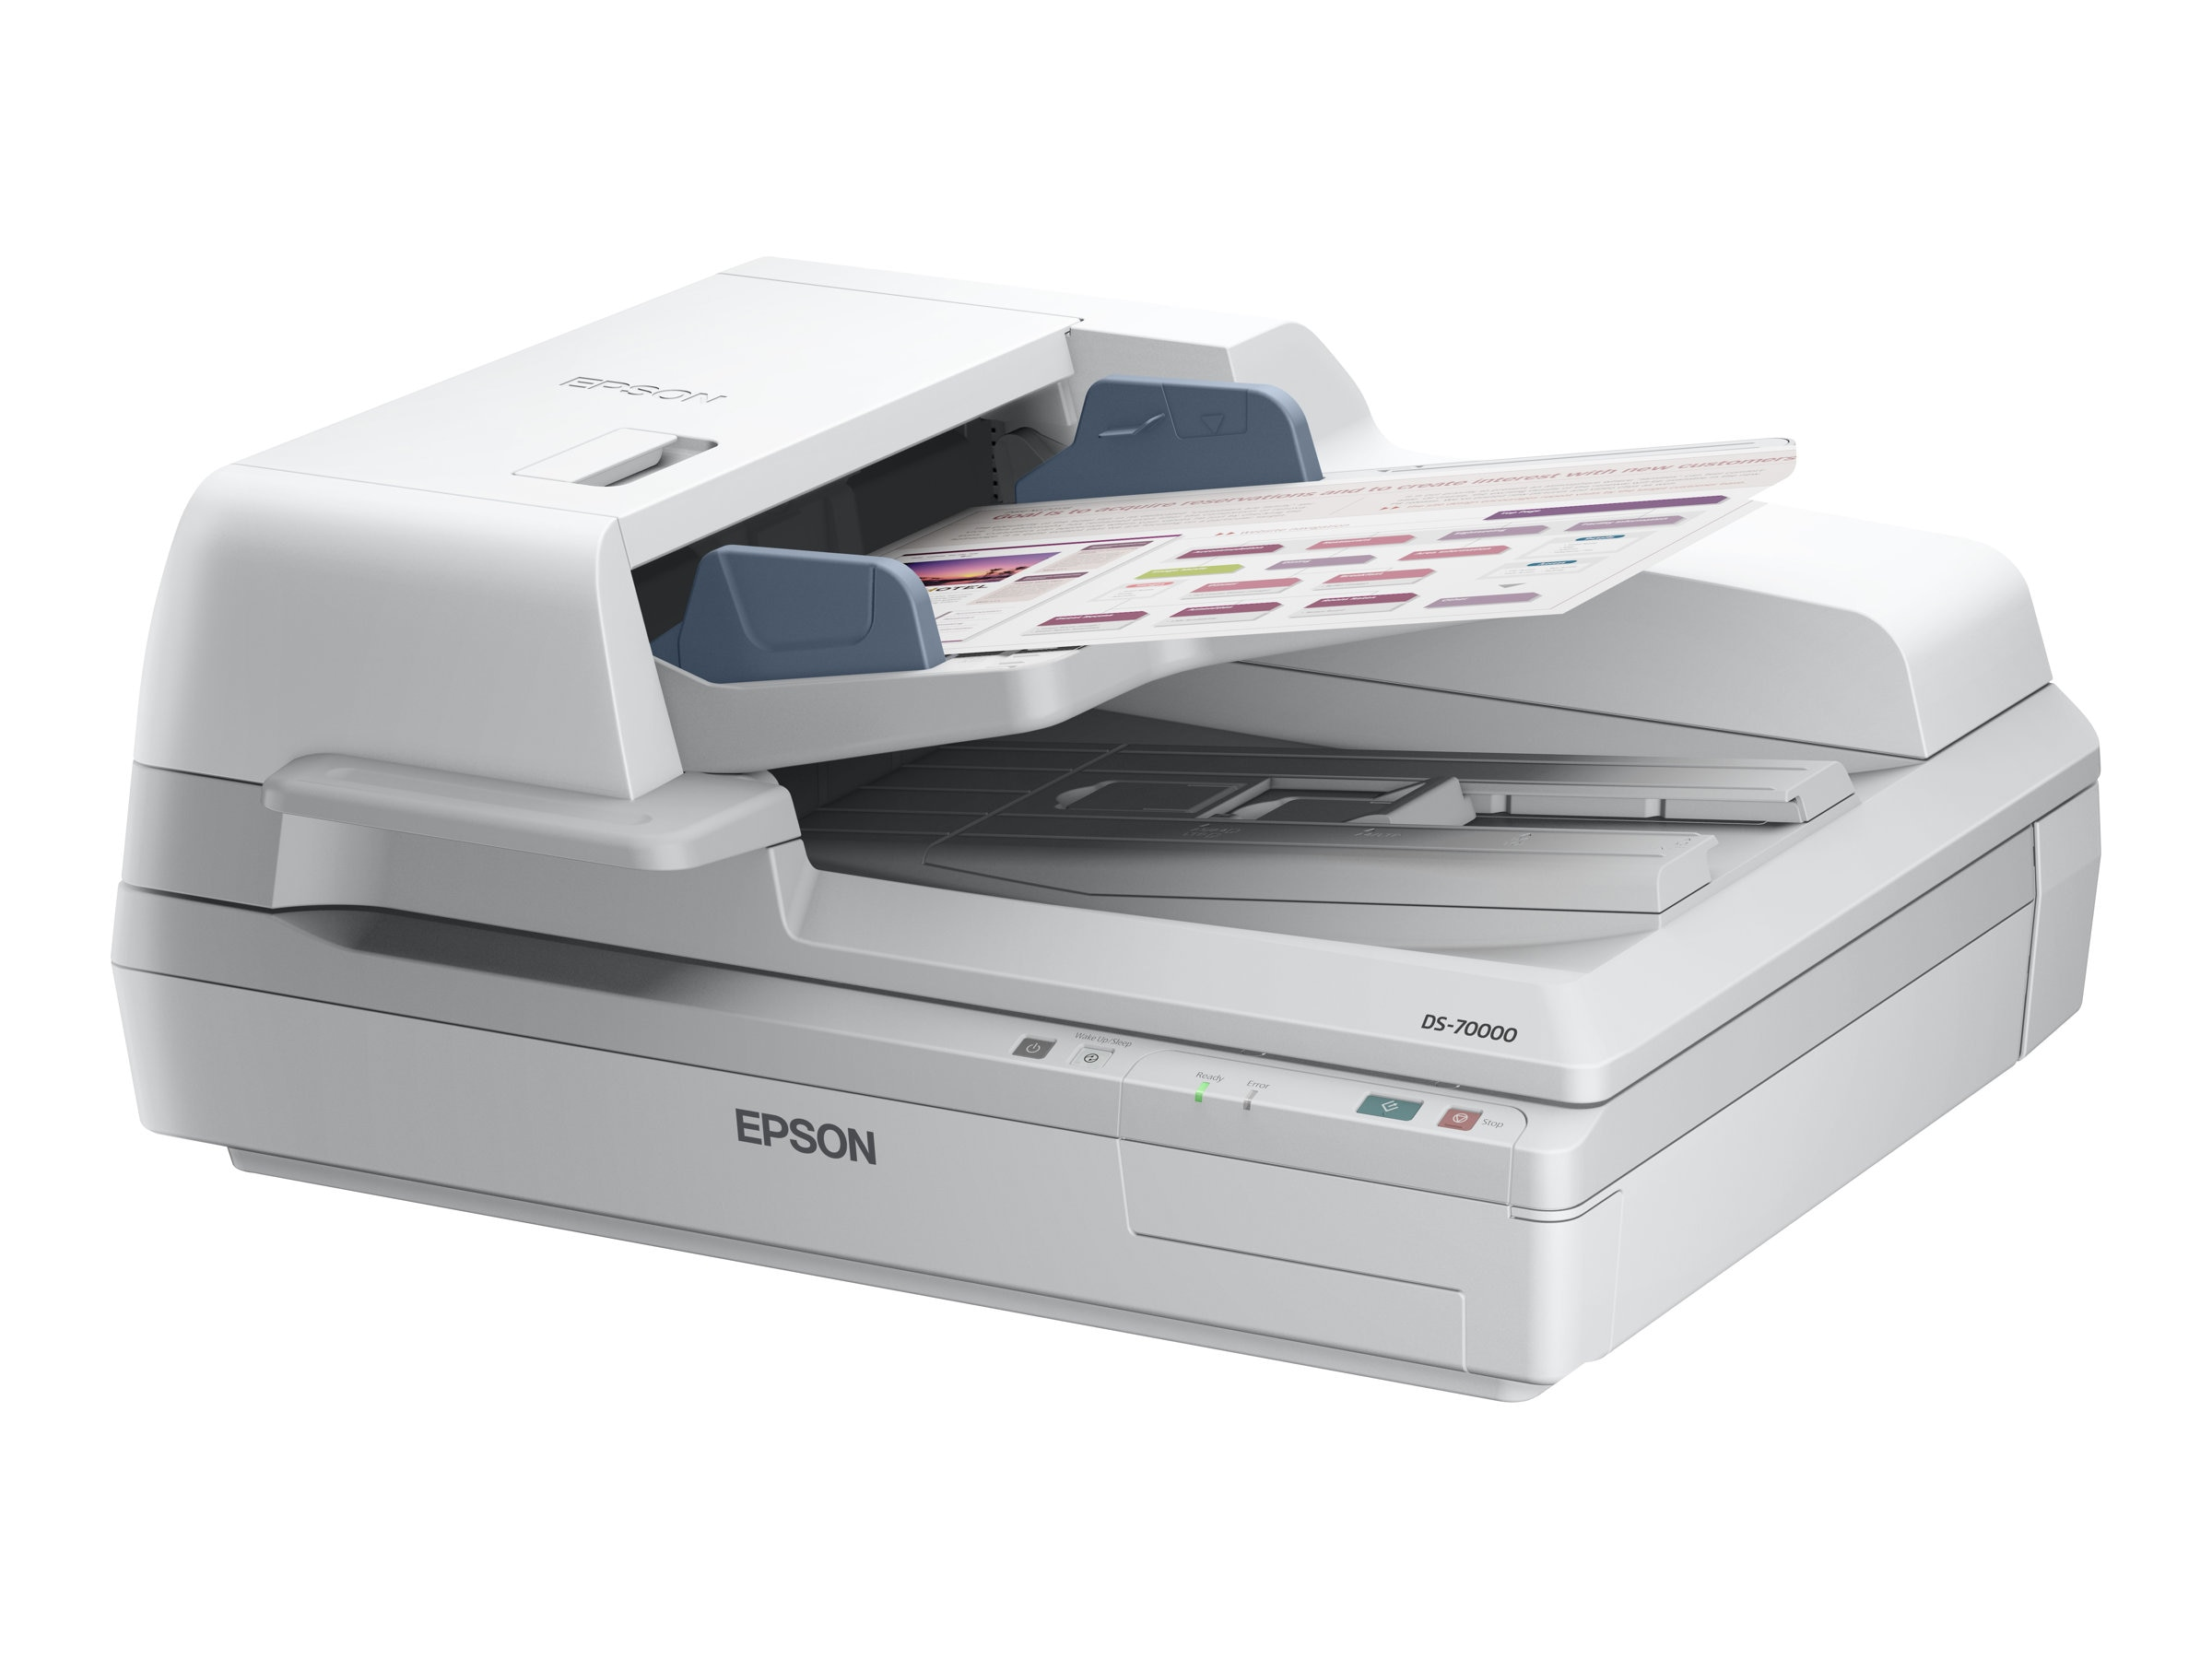 Epson WorkForce DS-70000 Scanner - $3999 less instant rebate of $100.00